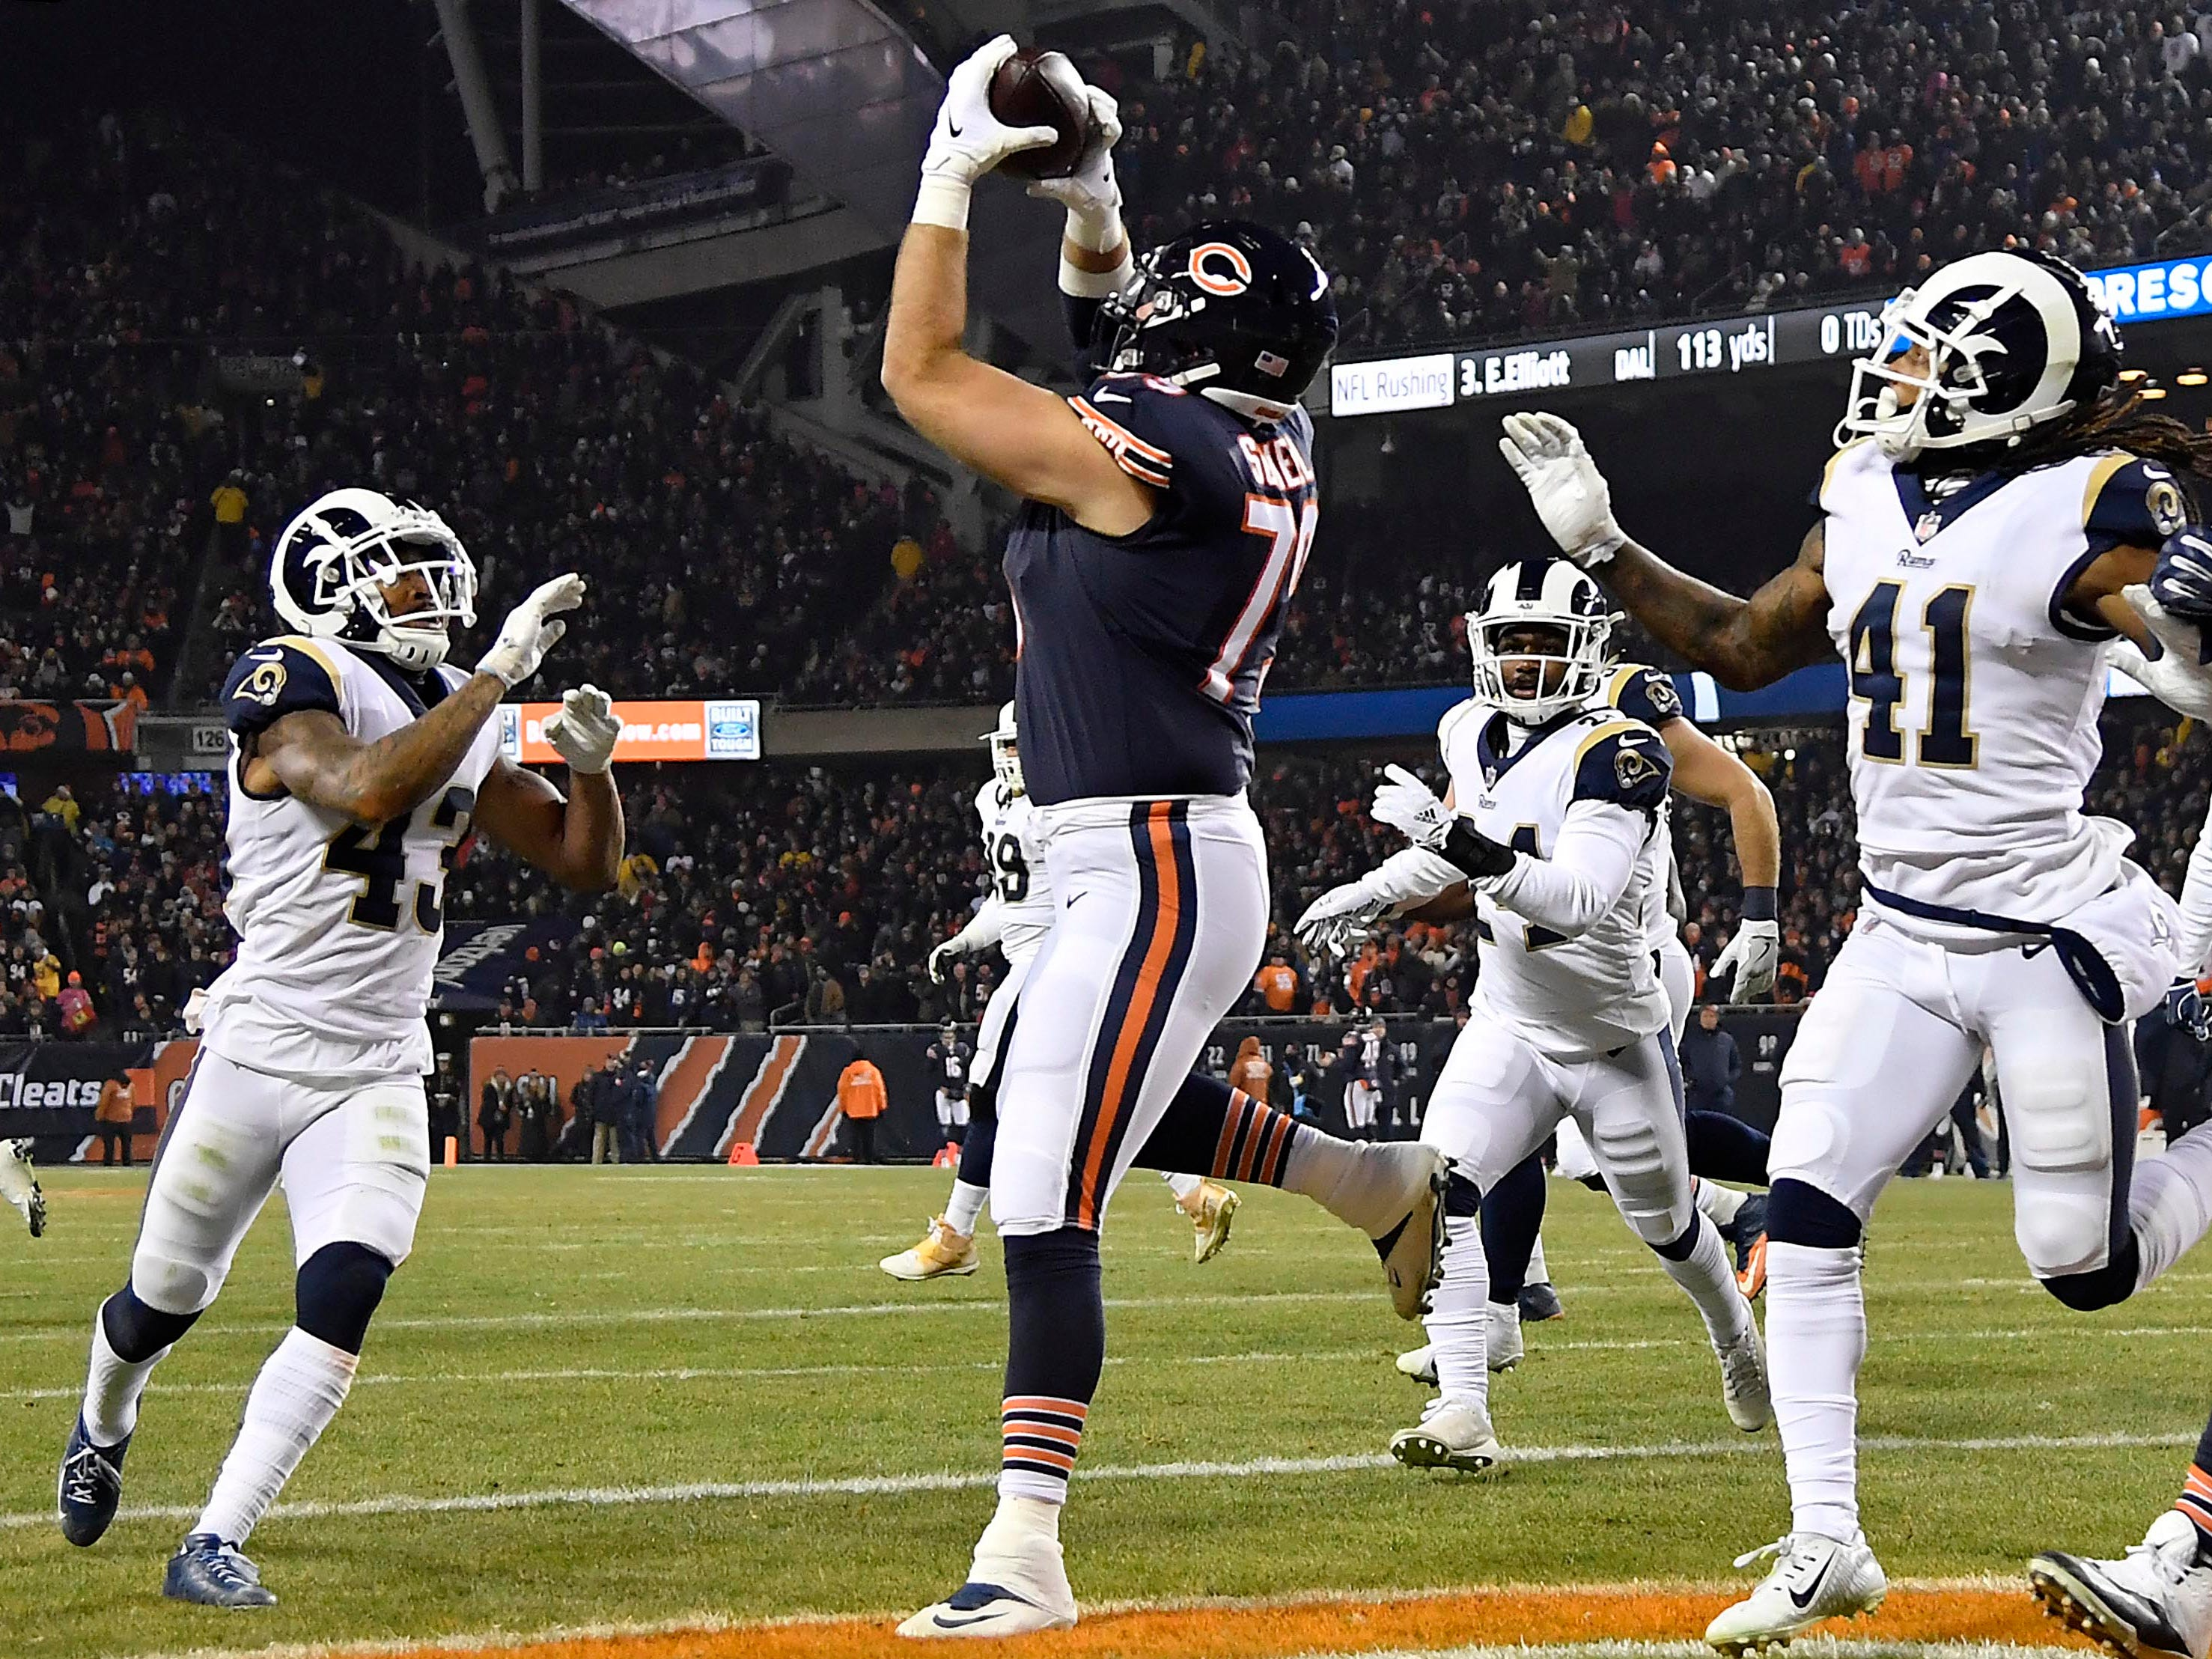 Week 14: Chicago Bears offensive tackle Bradley Sowell catches a touchdown pass against the Los Angeles Rams at Soldier Field. The Bears won the game 15-6.